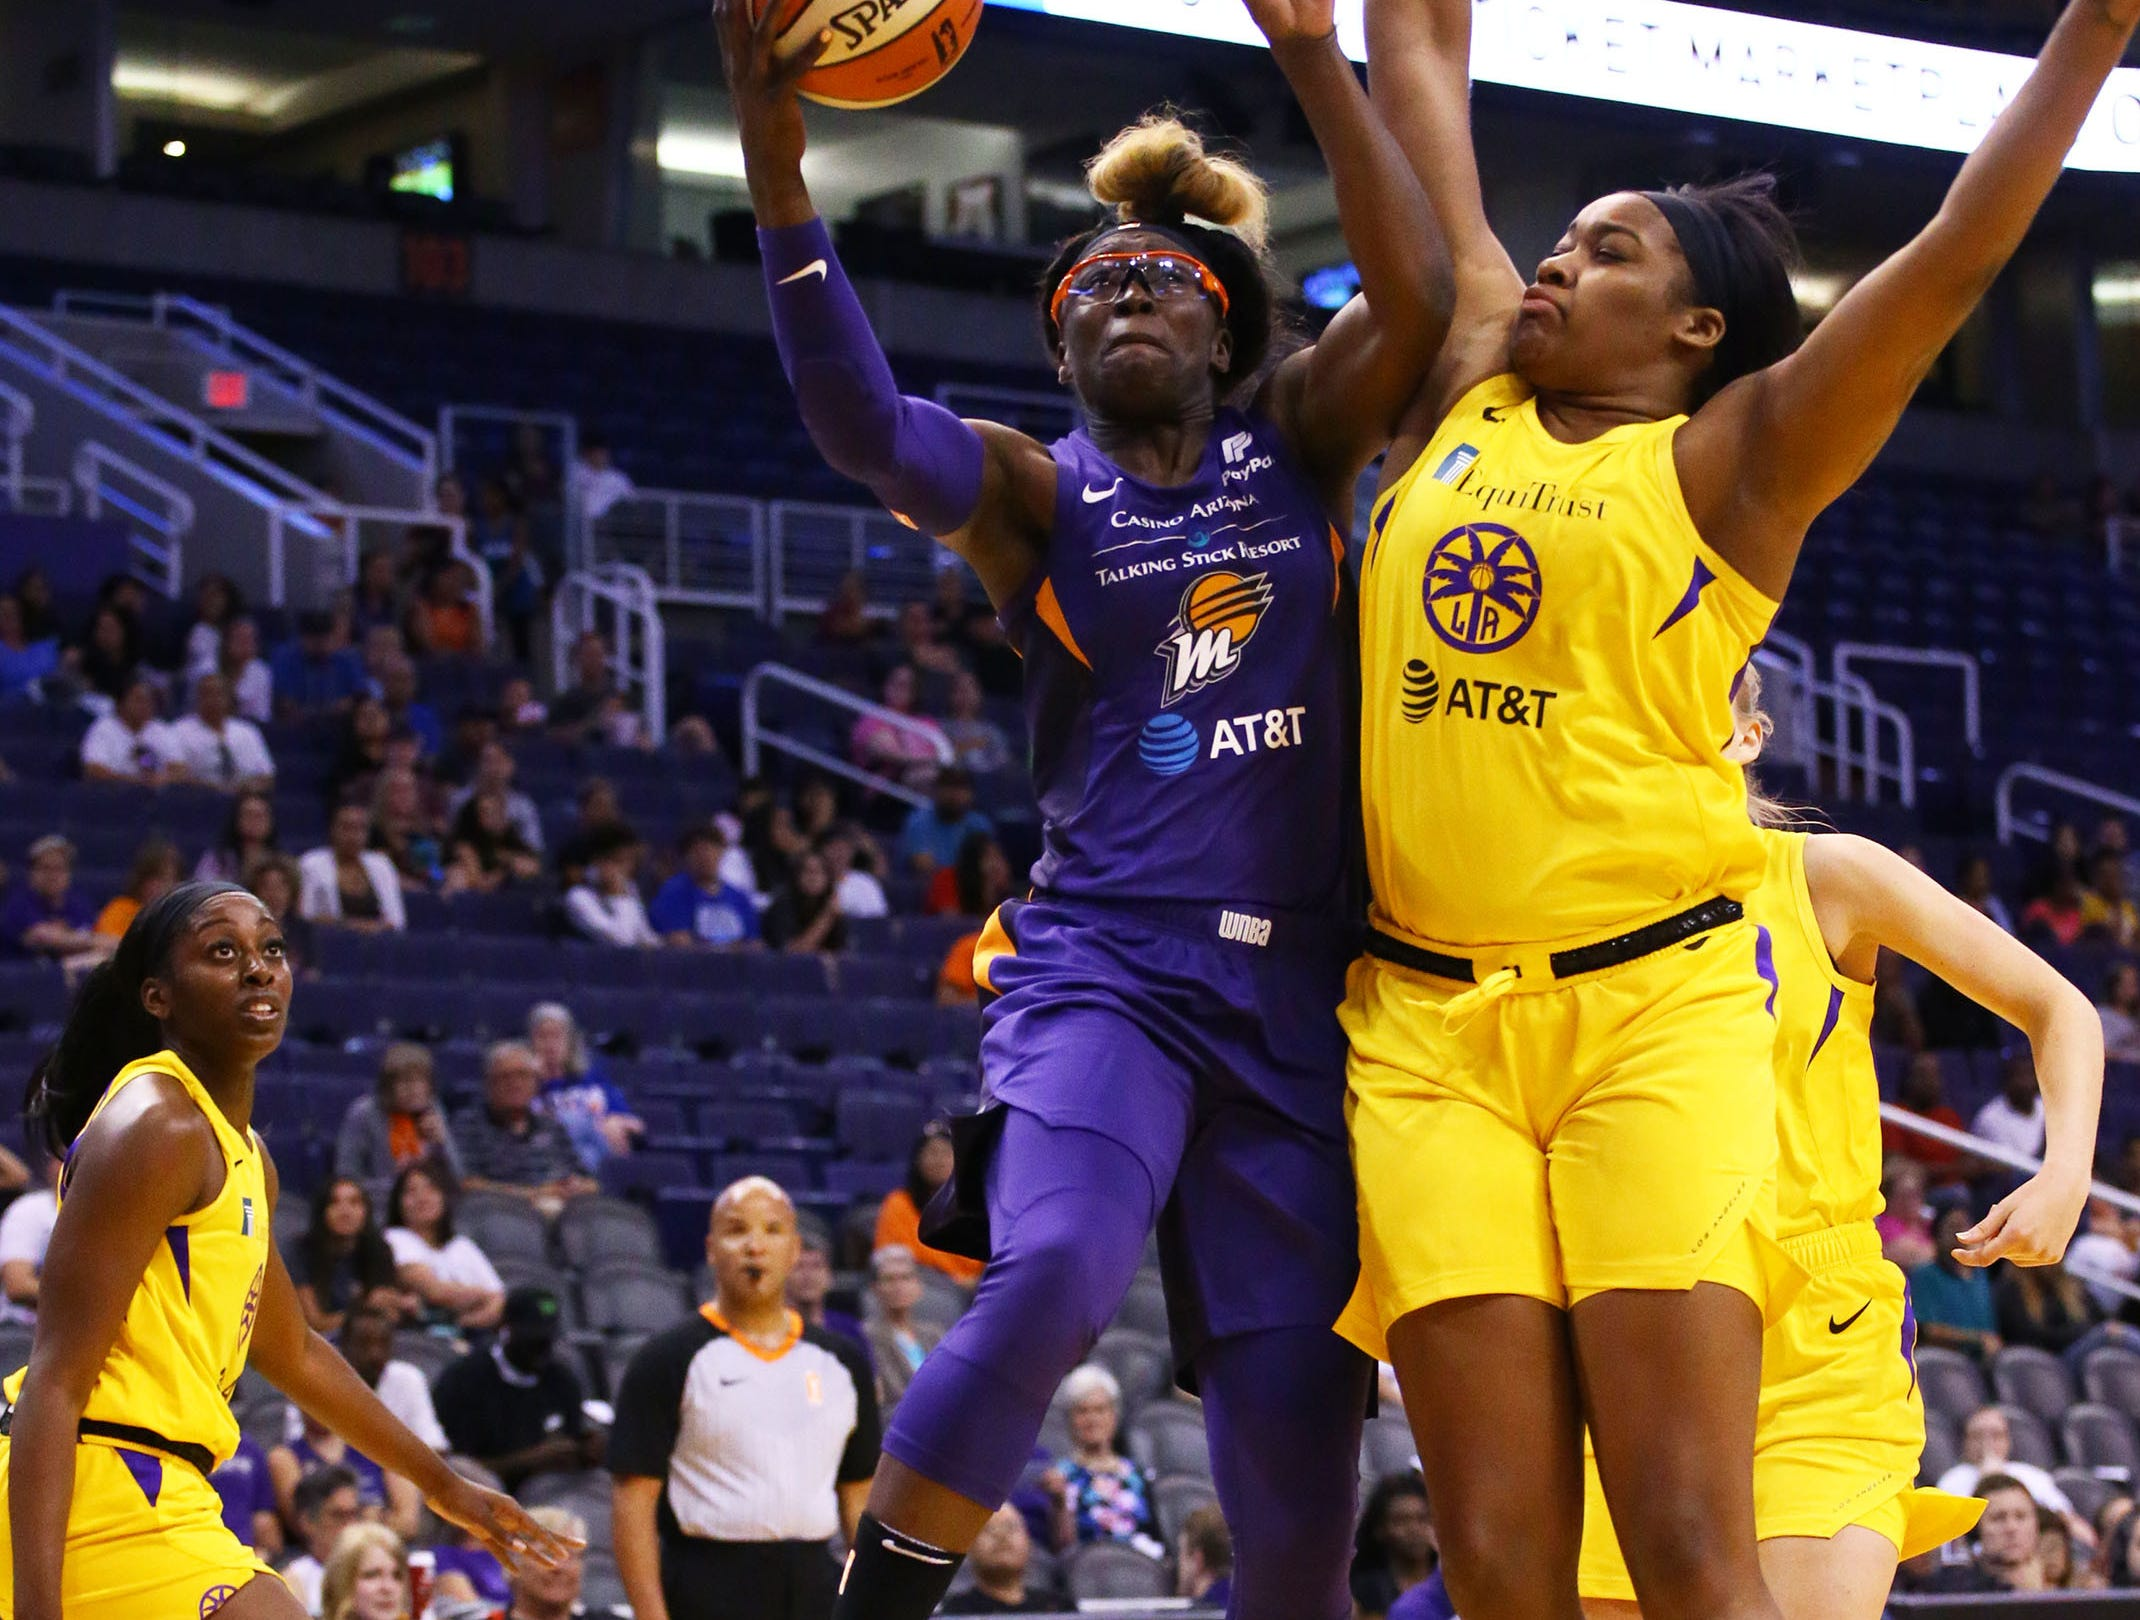 Phoenix Mercury forward Essence Carson looks to the basket against the Los Angeles Sparks in the first half during a preseason game on May 11, 2019 in Phoenix, Ariz.